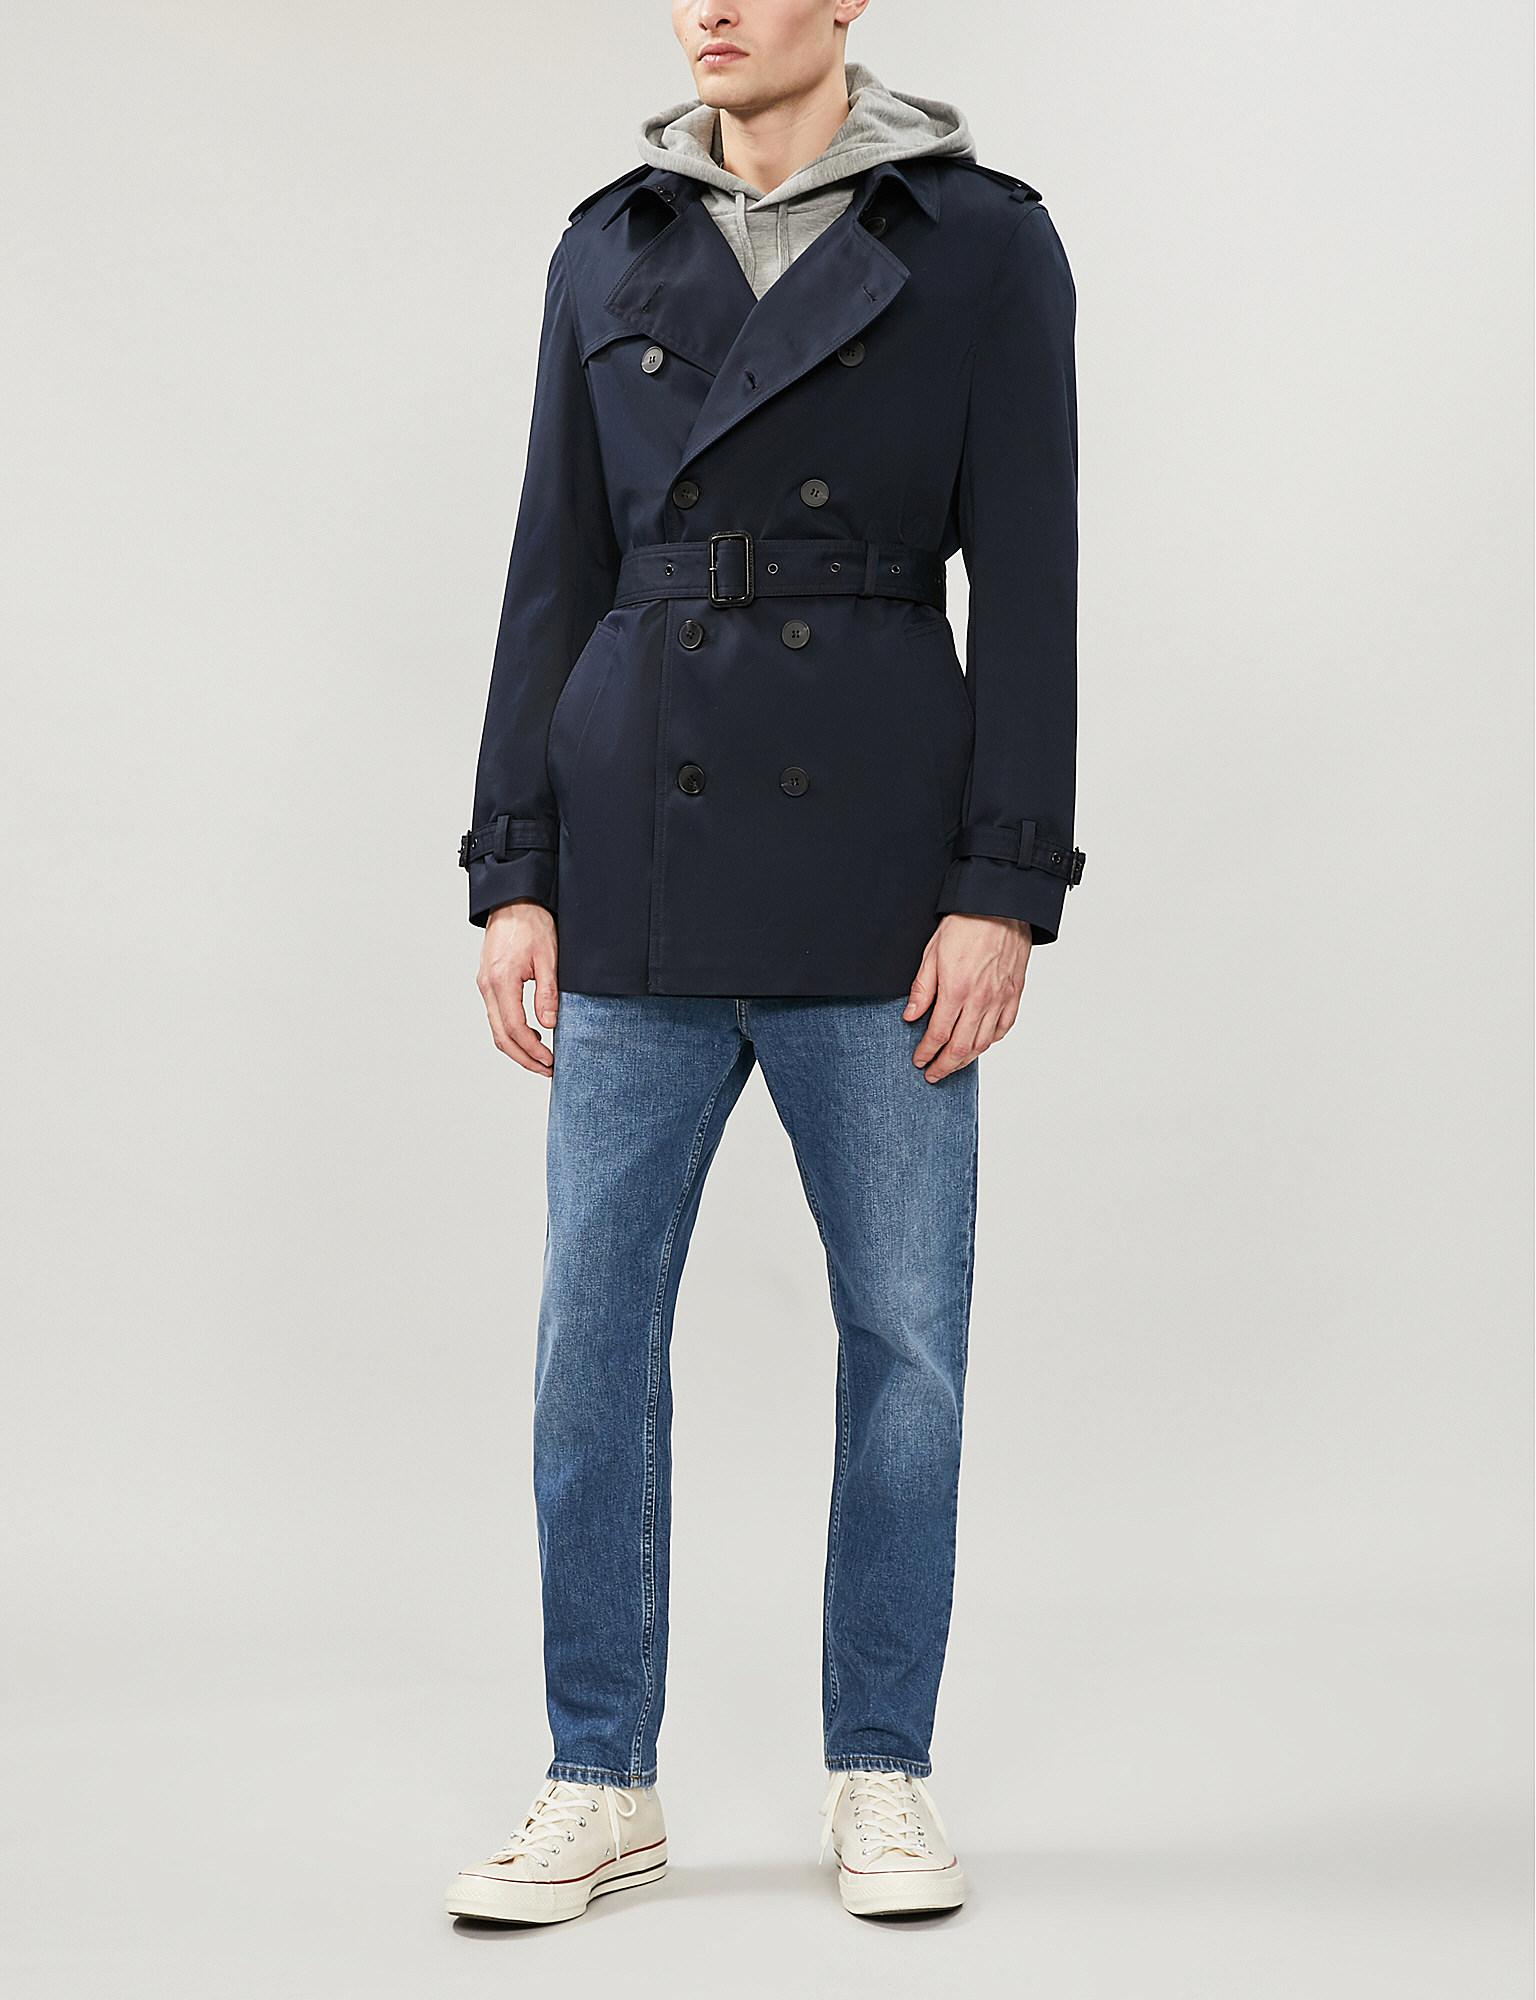 98a85412456 The Kooples Double-breasted Stretch-cotton Twill Coat in Blue for ...